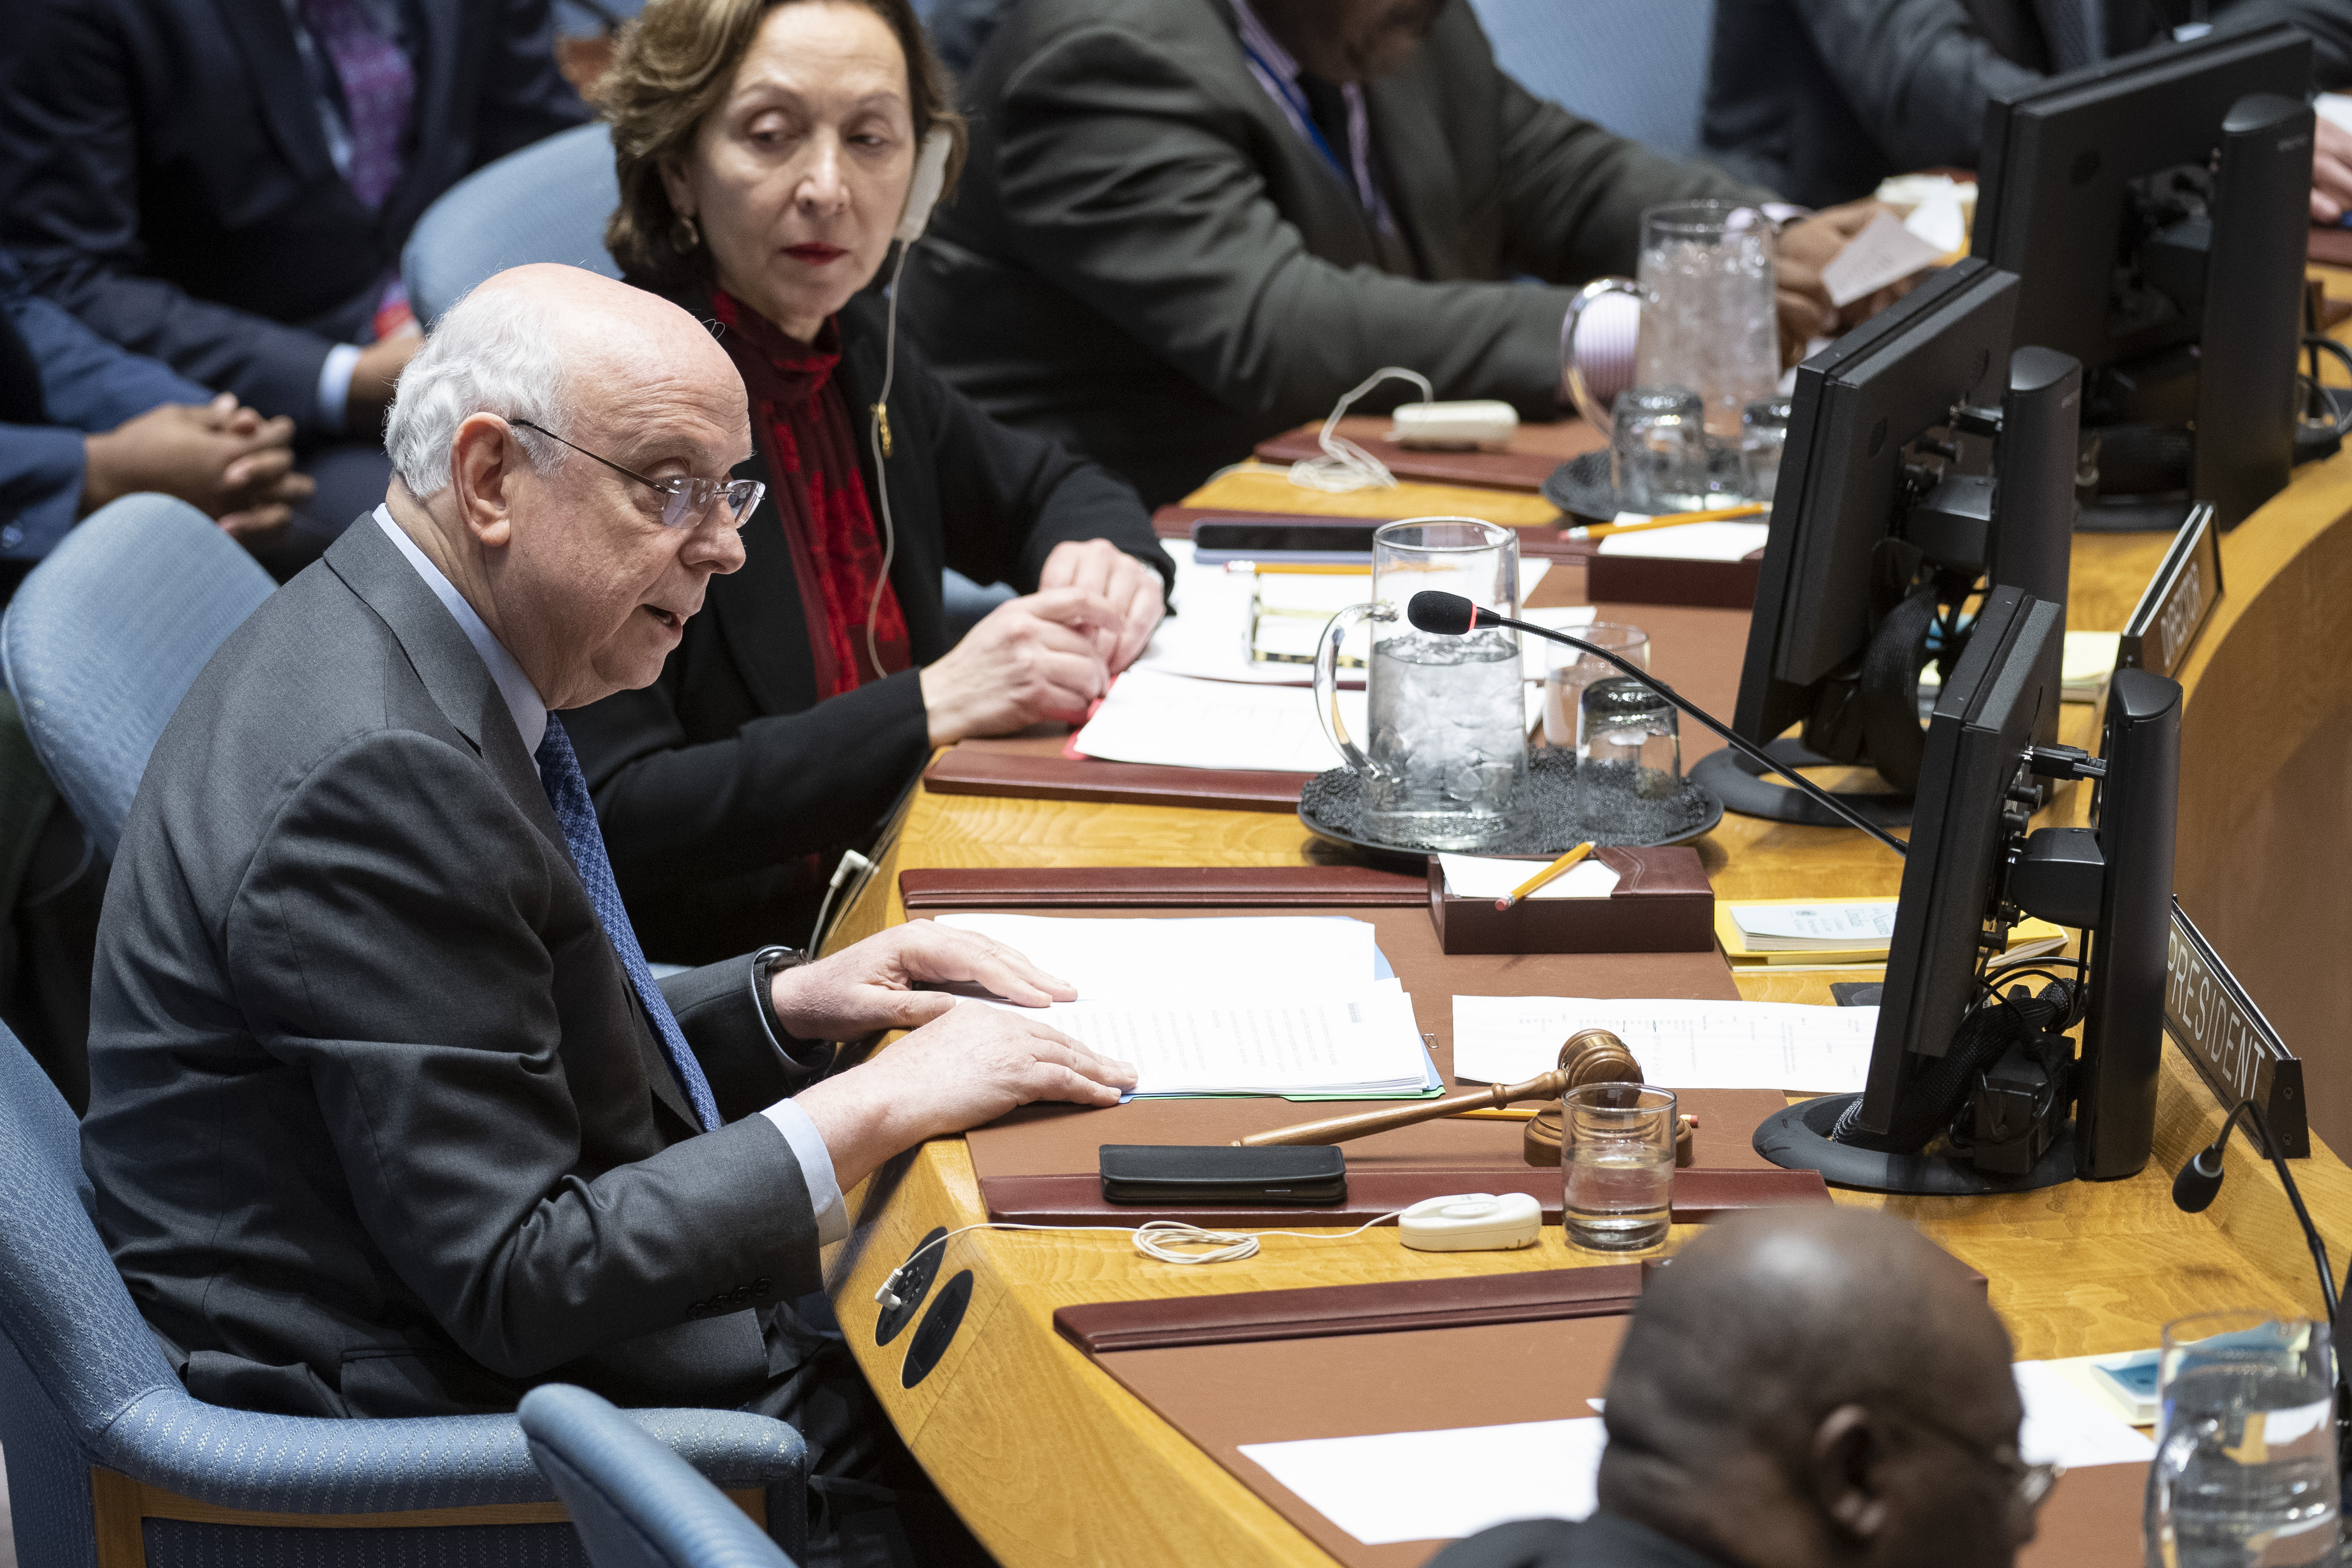 José Singer, Special Envoy of the Dominican Republic to the United Nations and President of the Security Council for the month of January, chairs the Security Council meeting on the situation in the Middle East, including the Palestinian question.